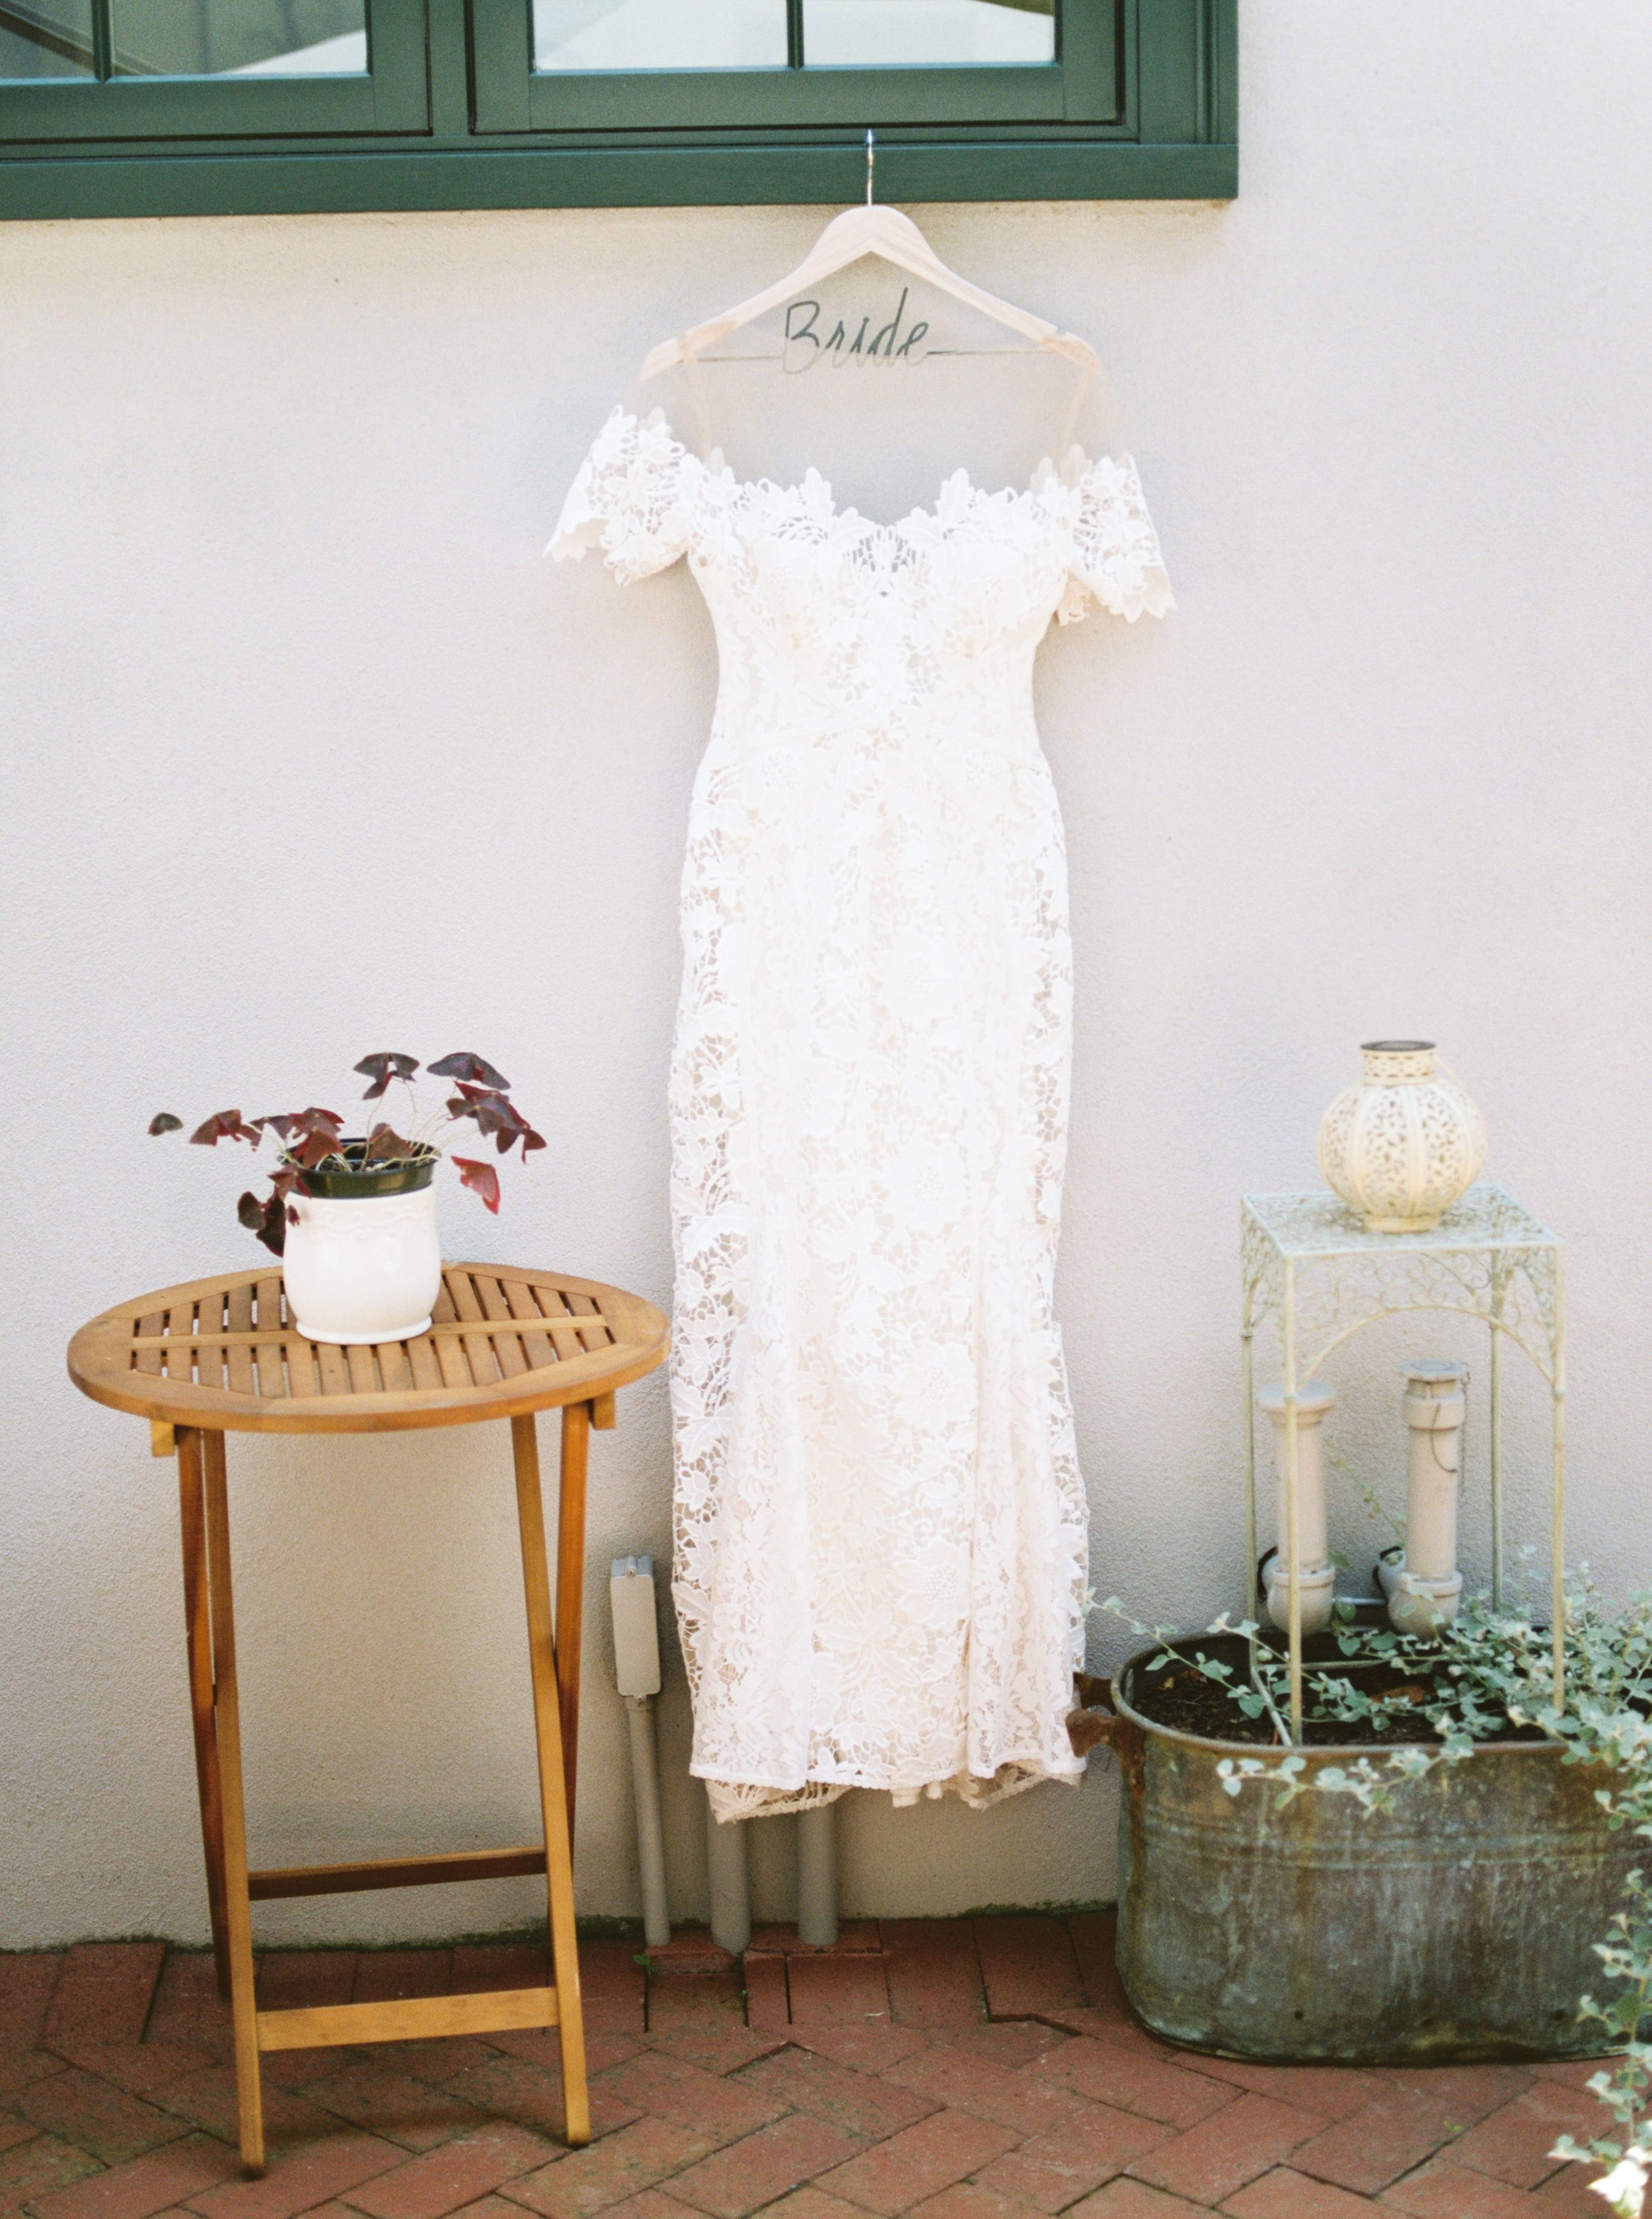 Classy white lace cap-sleeved wedding dress from Lover's Society for a modern summer wedding at Hotel du Village.